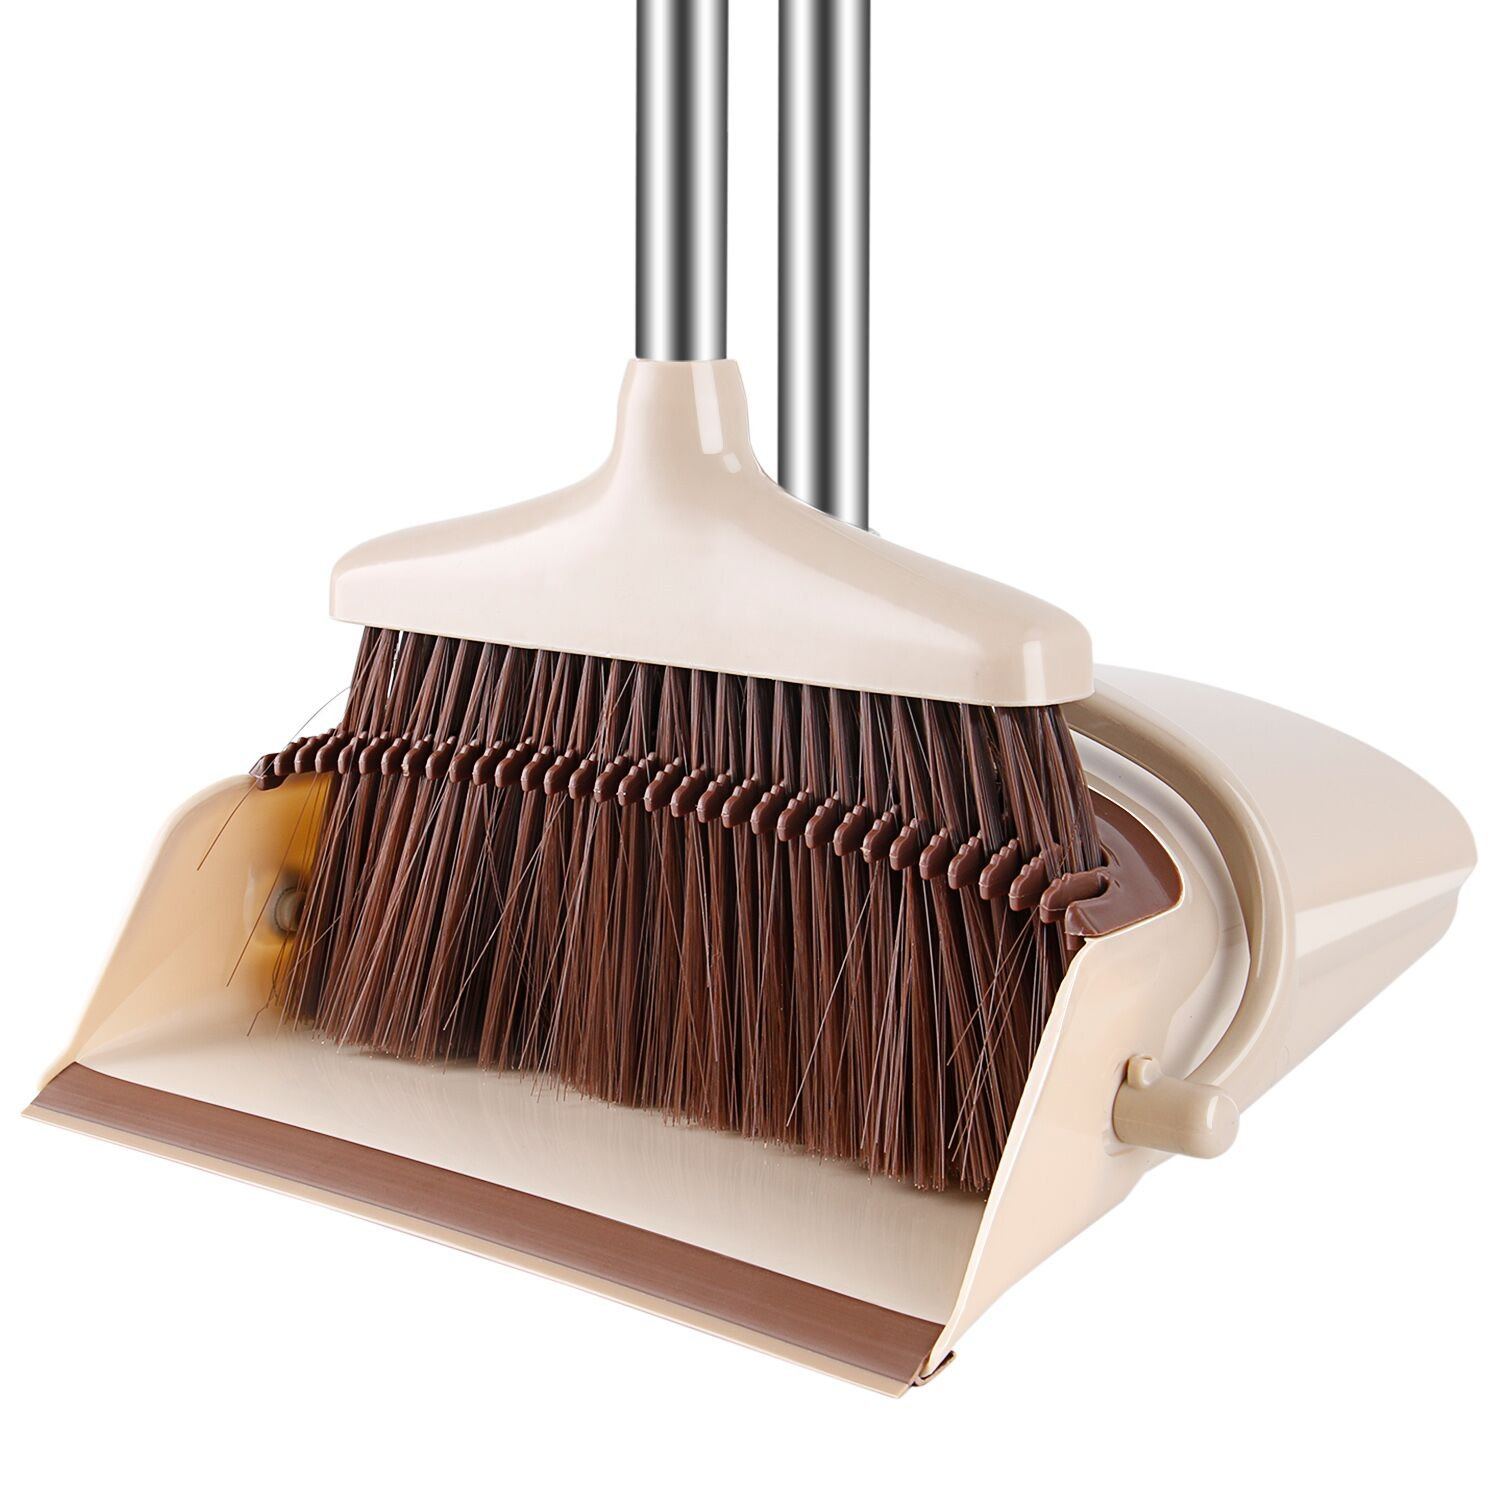 Windproof Broom and Dustpan Set Upright with Long Handle Great for Sweeping Kitchen,Office, House, Outdoors